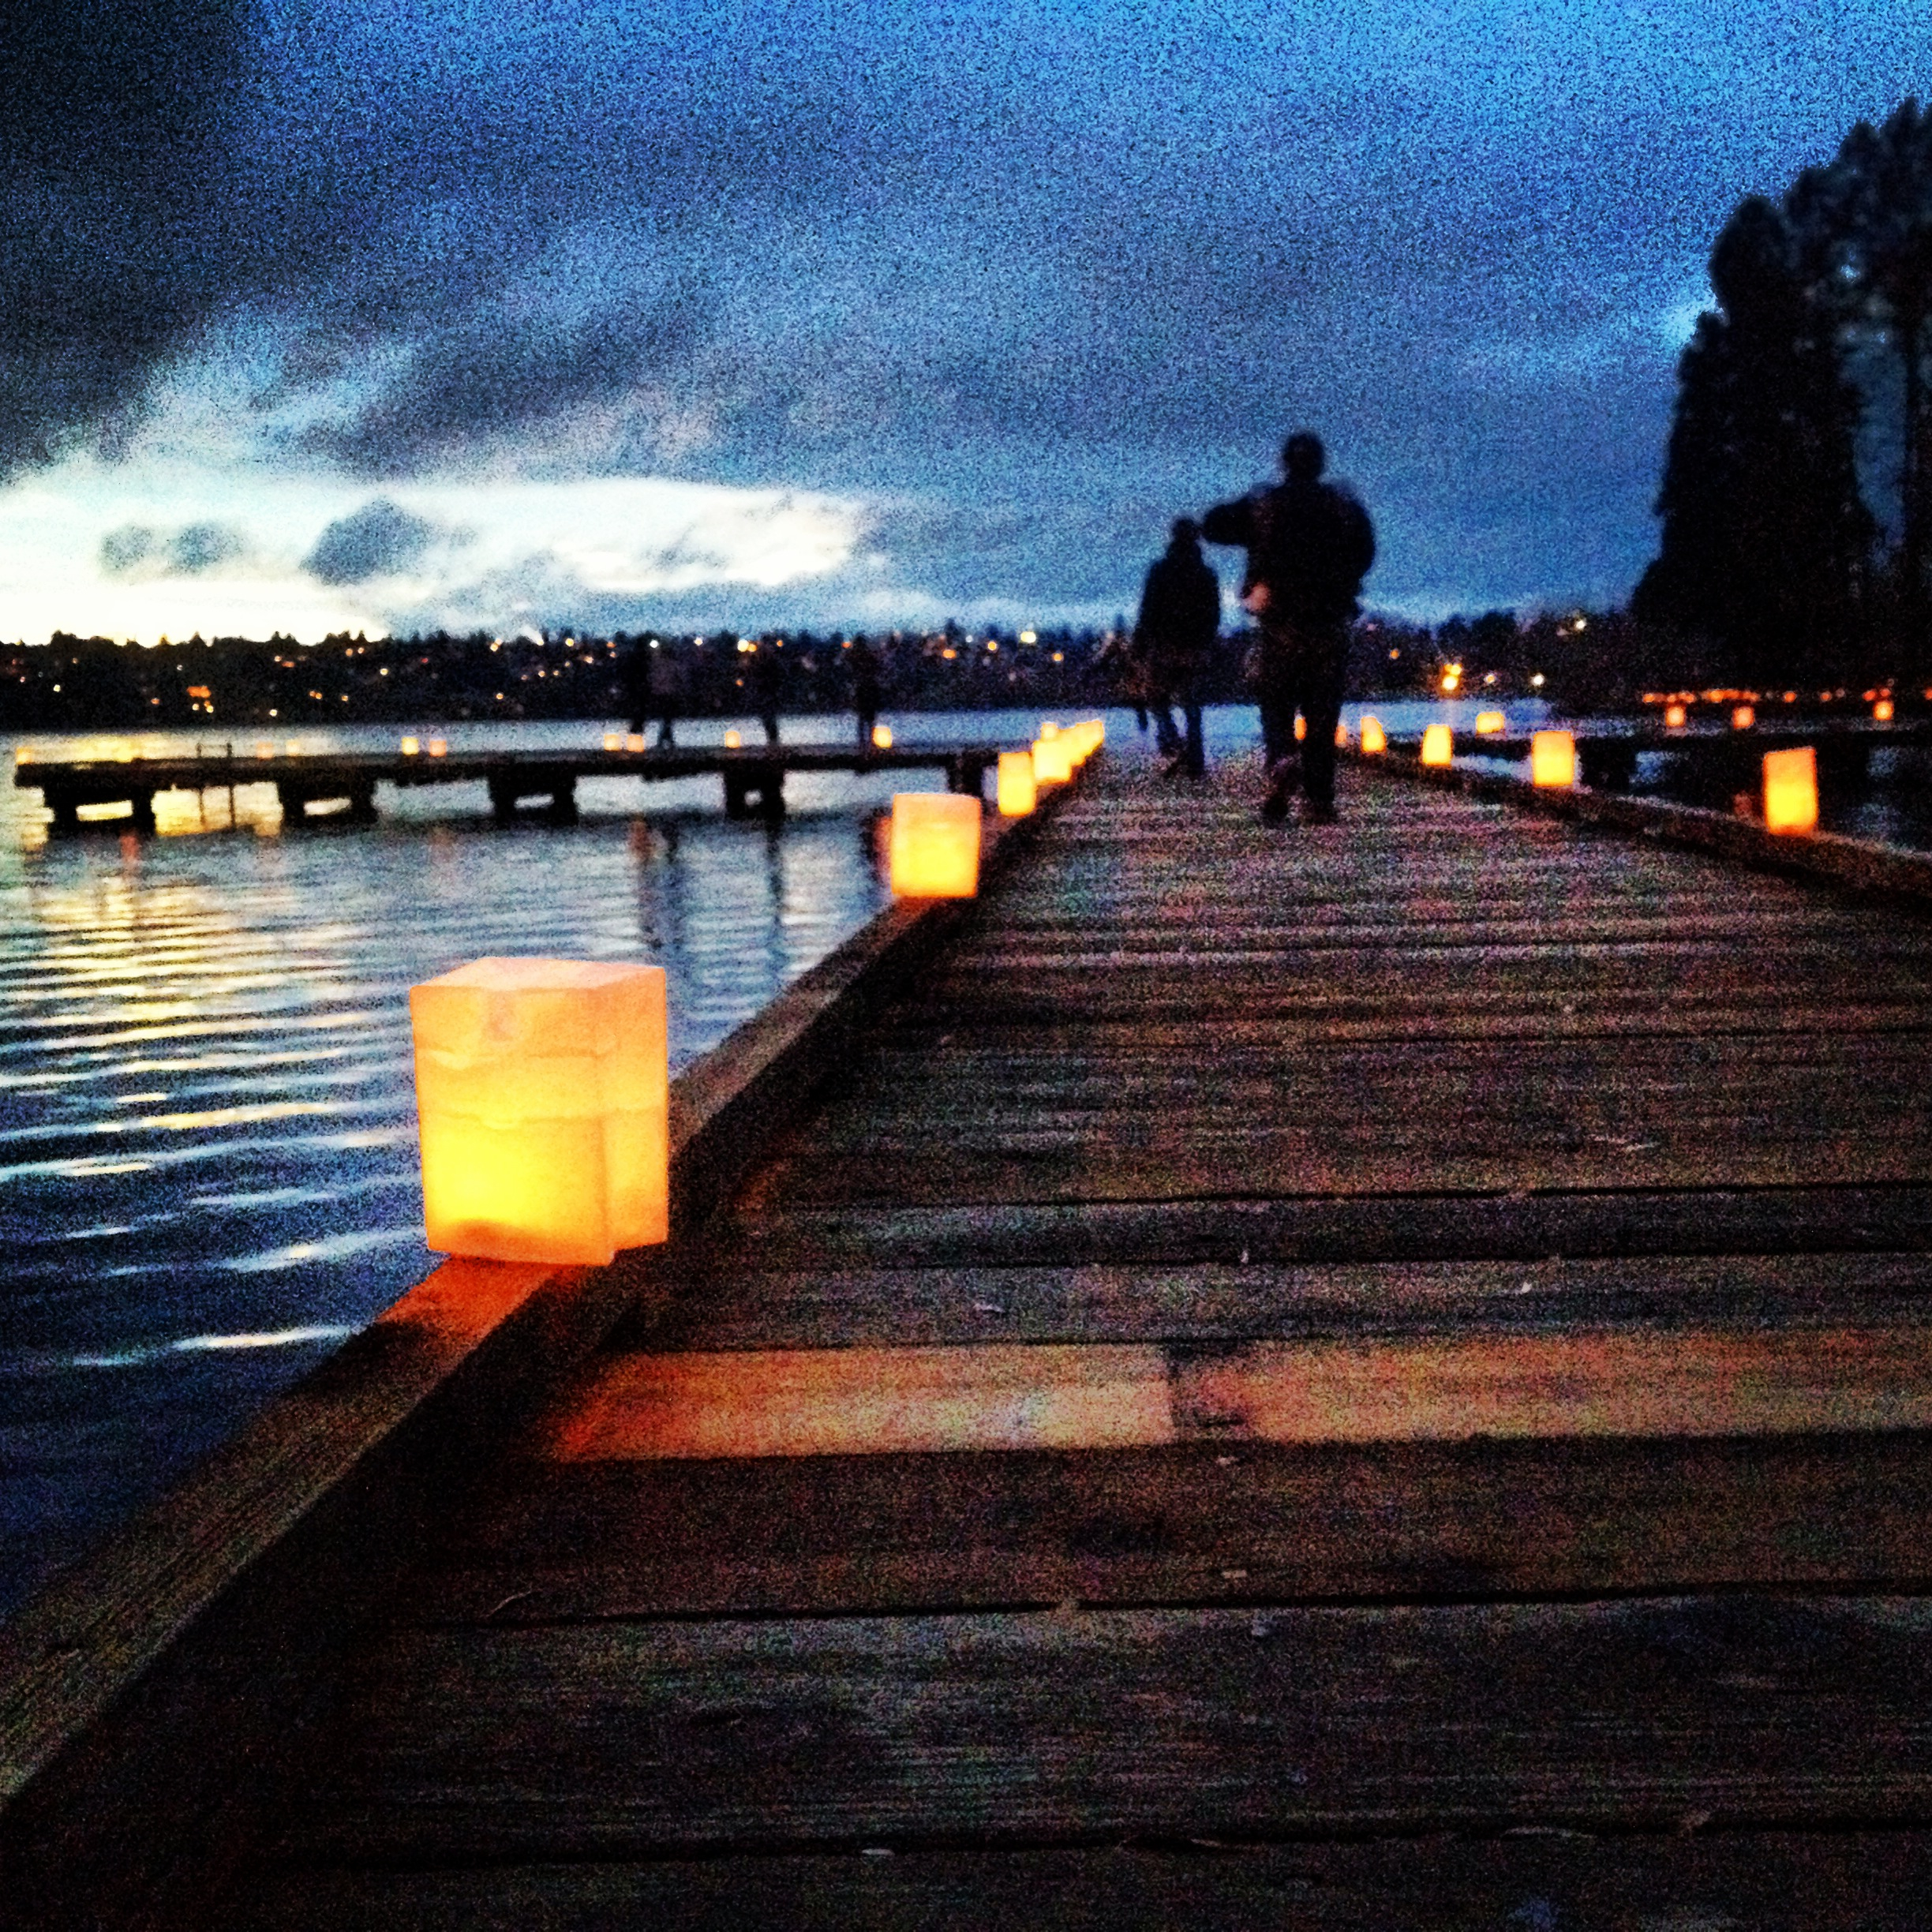 They even light the docks that surround the lake with the little candle-lit lanterns.